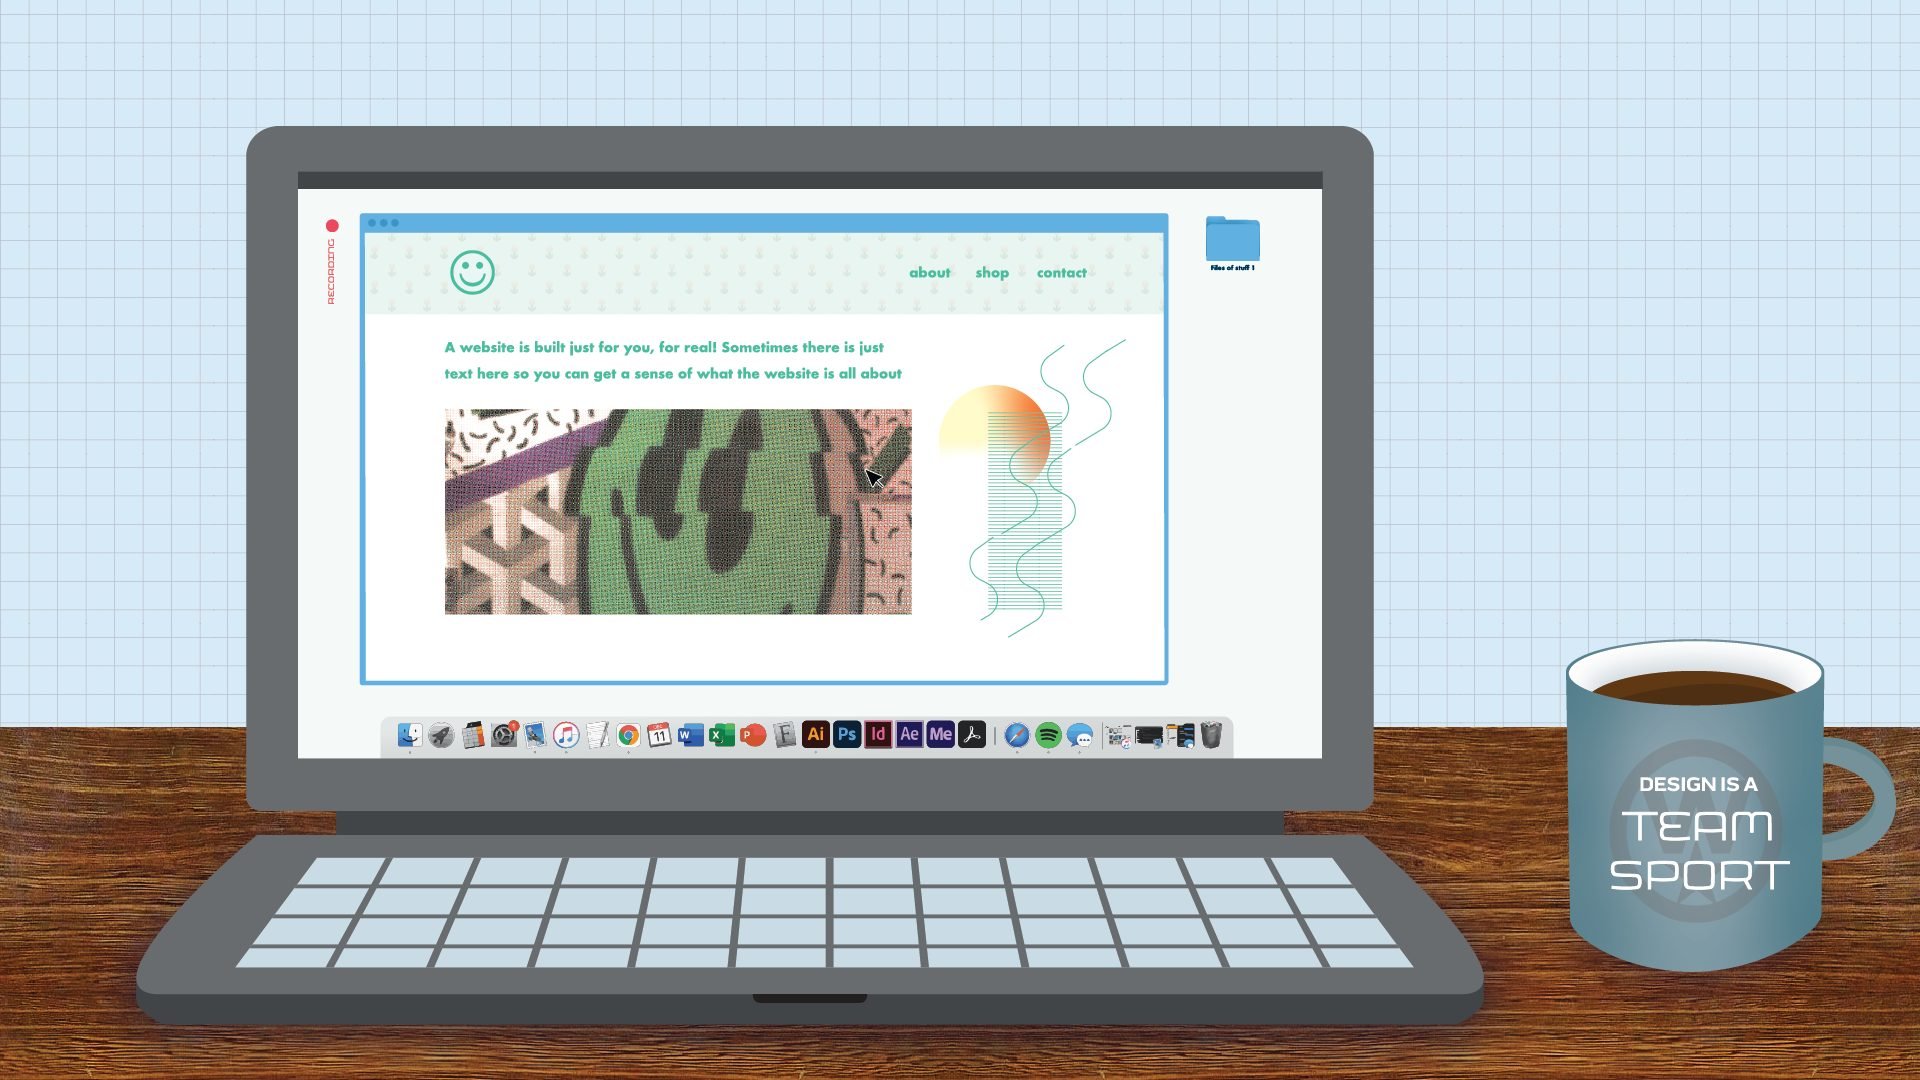 """Illustrated header graphic with digitally collaged elements showing a laptop on a table with a website pulled up. The mug says, """"Design is a team sport,"""" which is otherwisz's motto"""